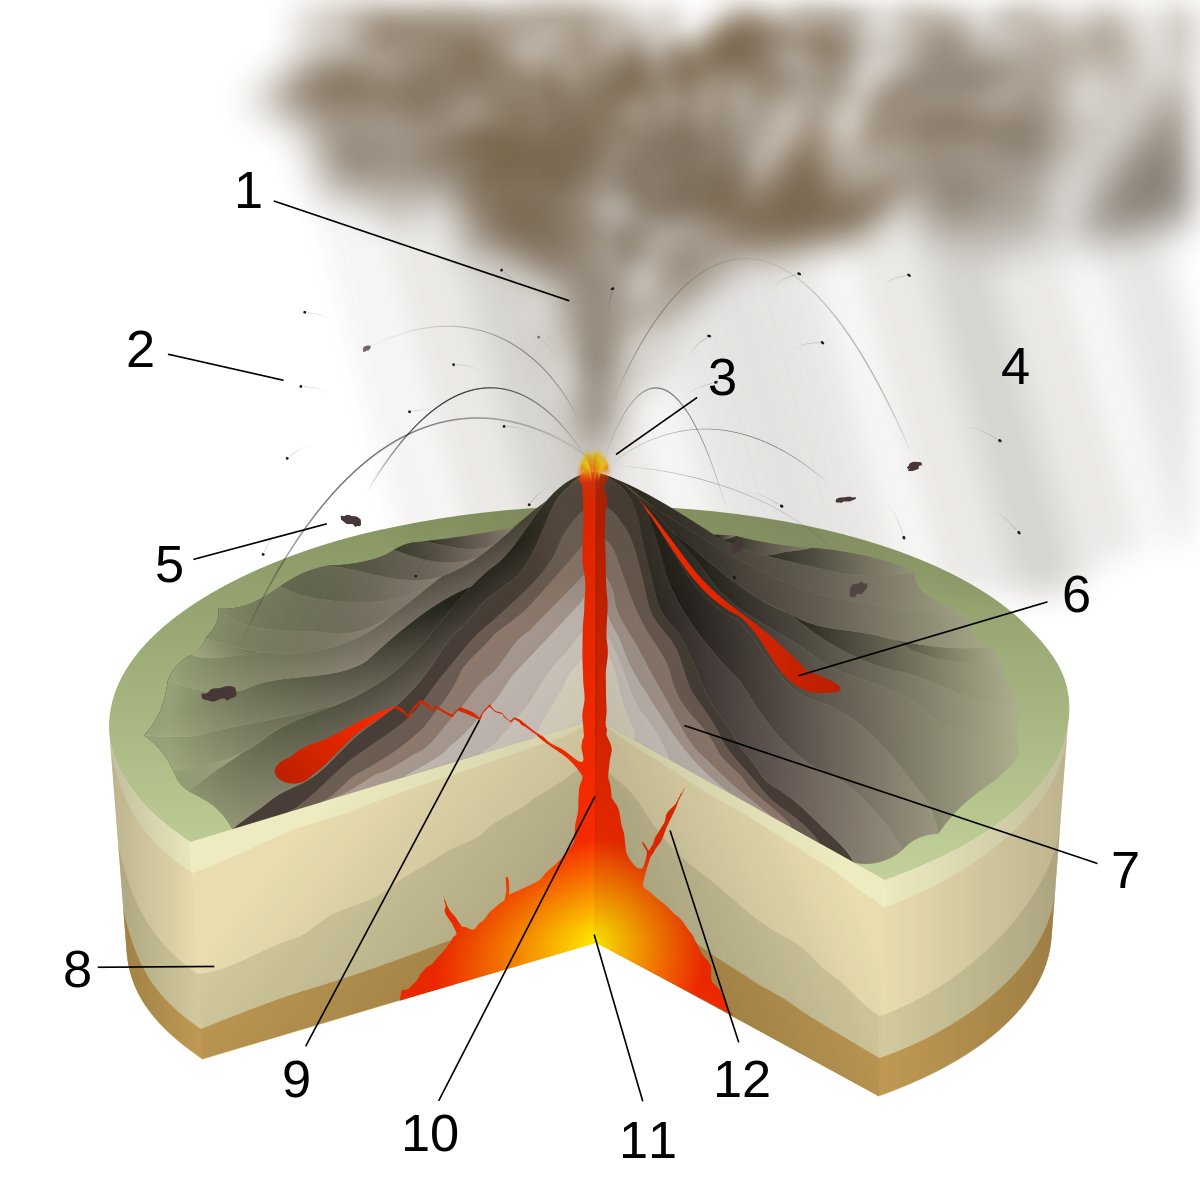 Volcanoes drawing volcanic mountain. Vulcanian eruption wikipedia